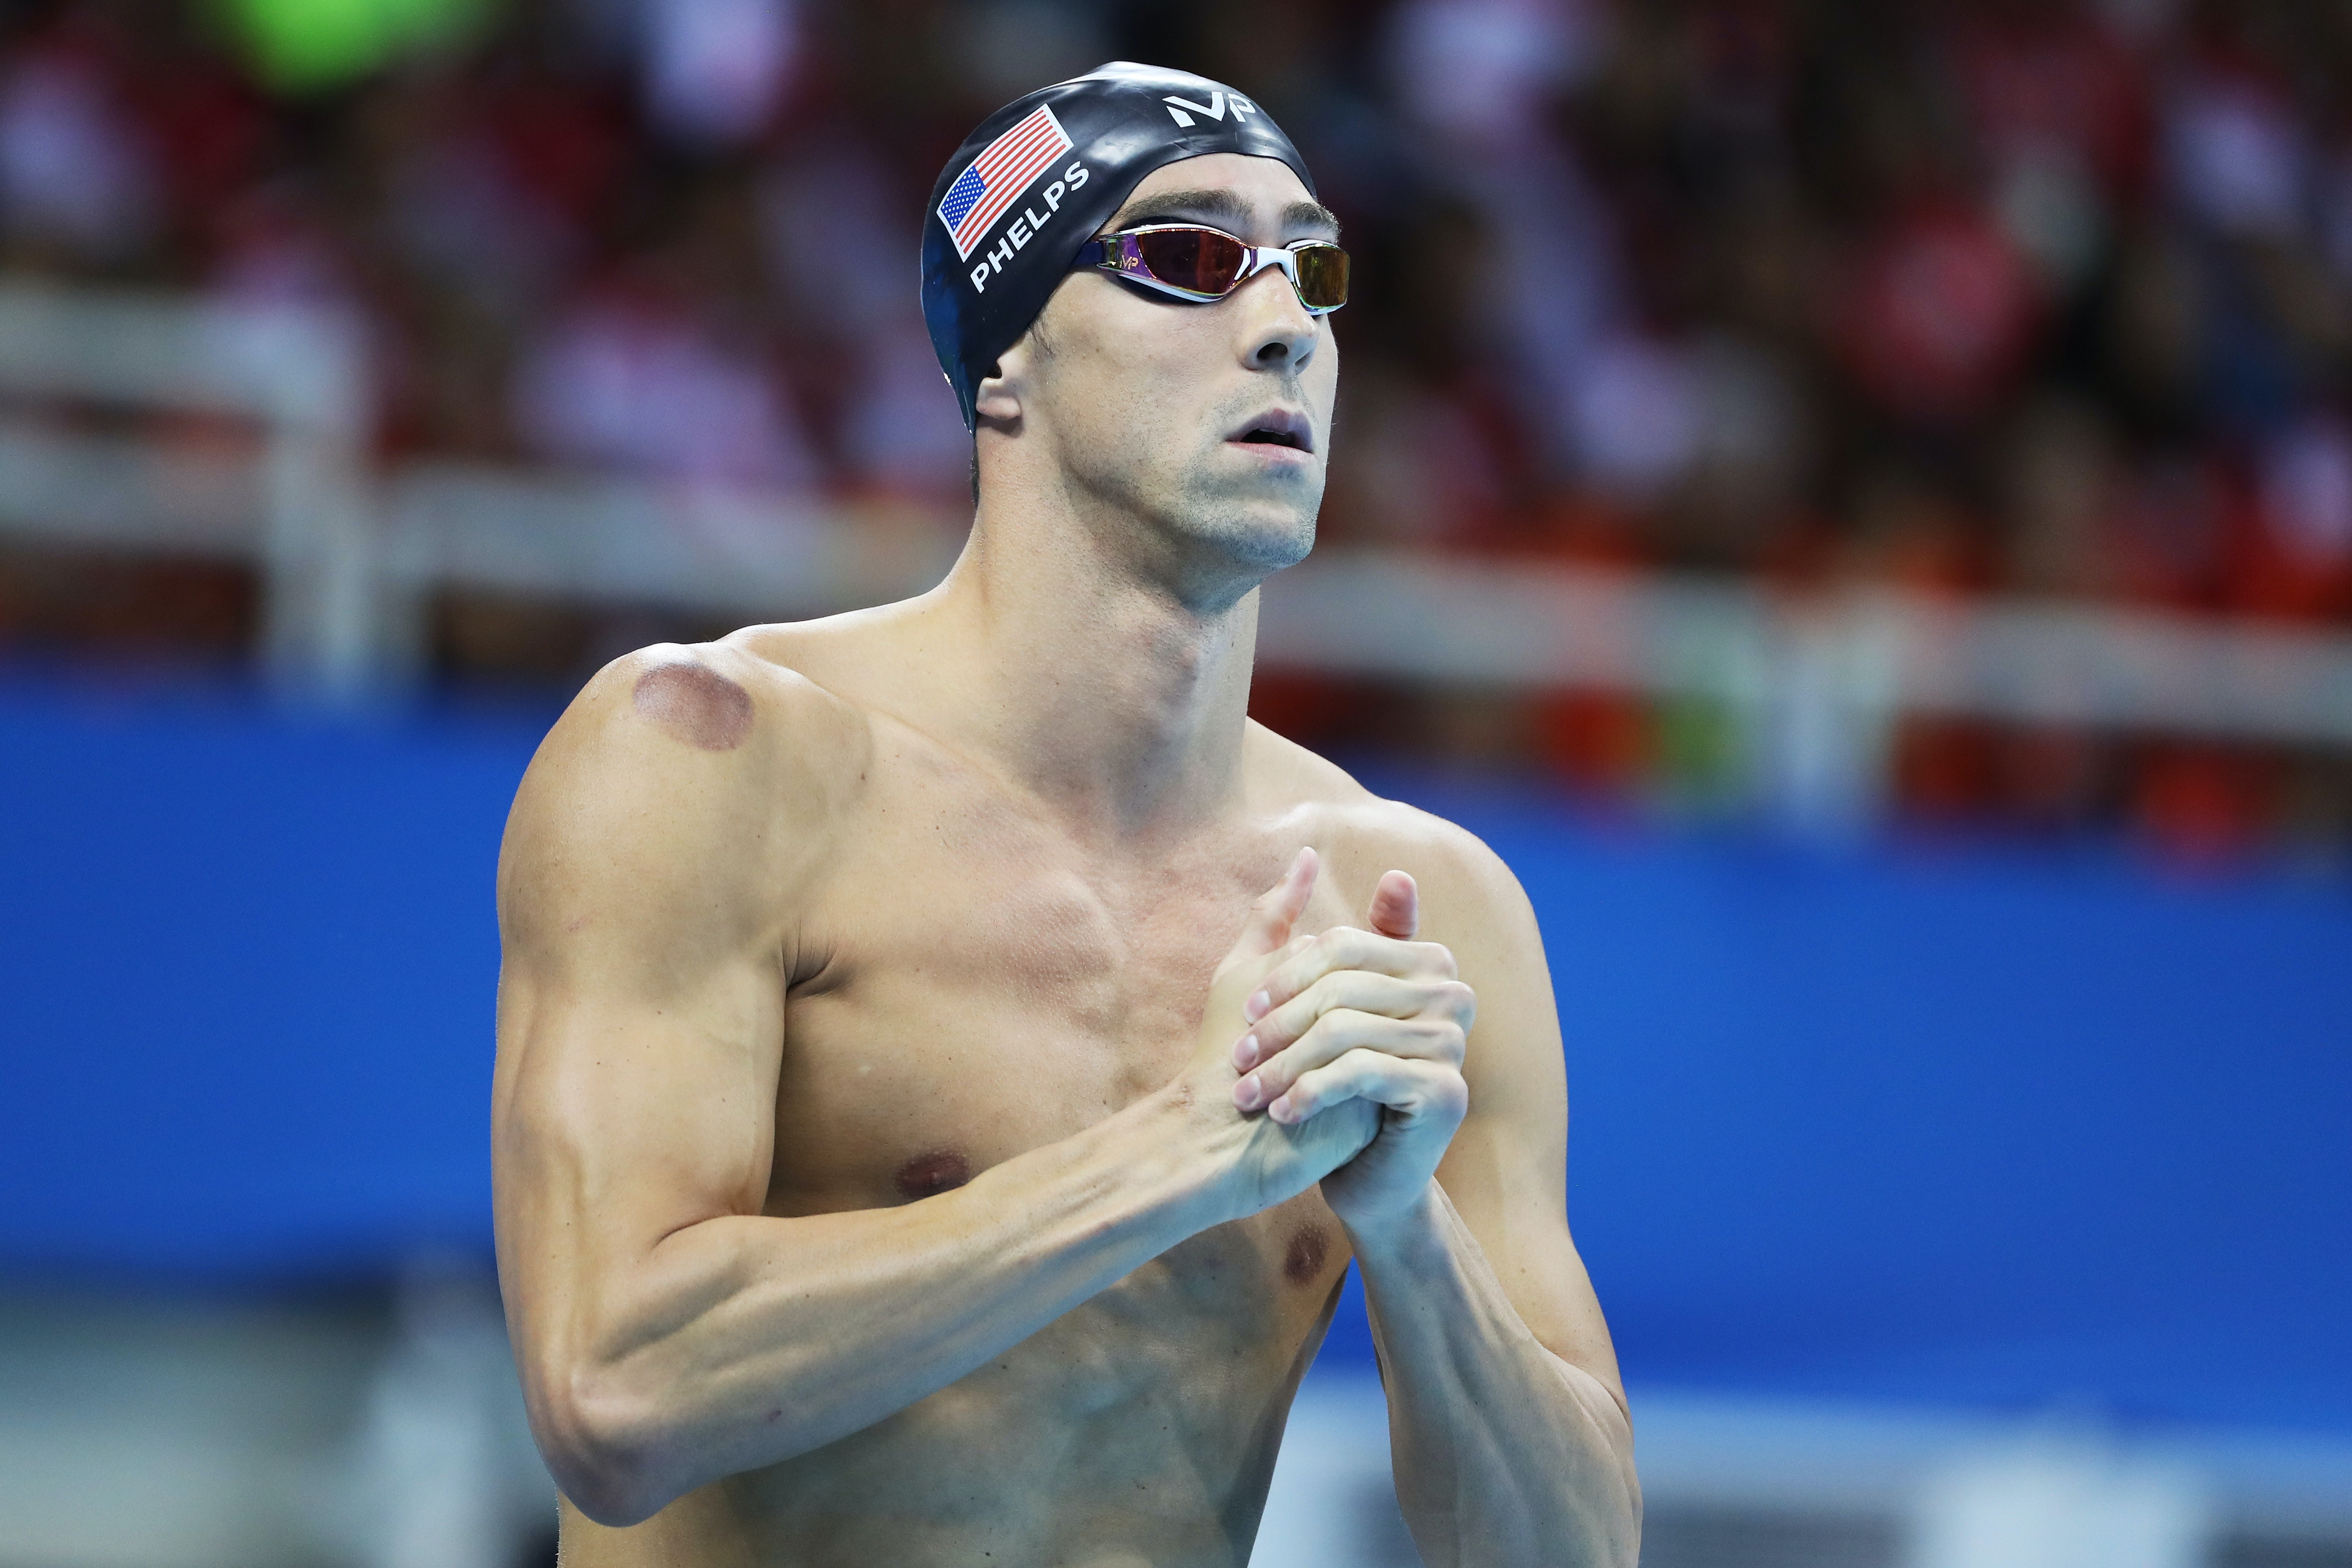 Katie Ledecky wins gold in 200-meter freestyle